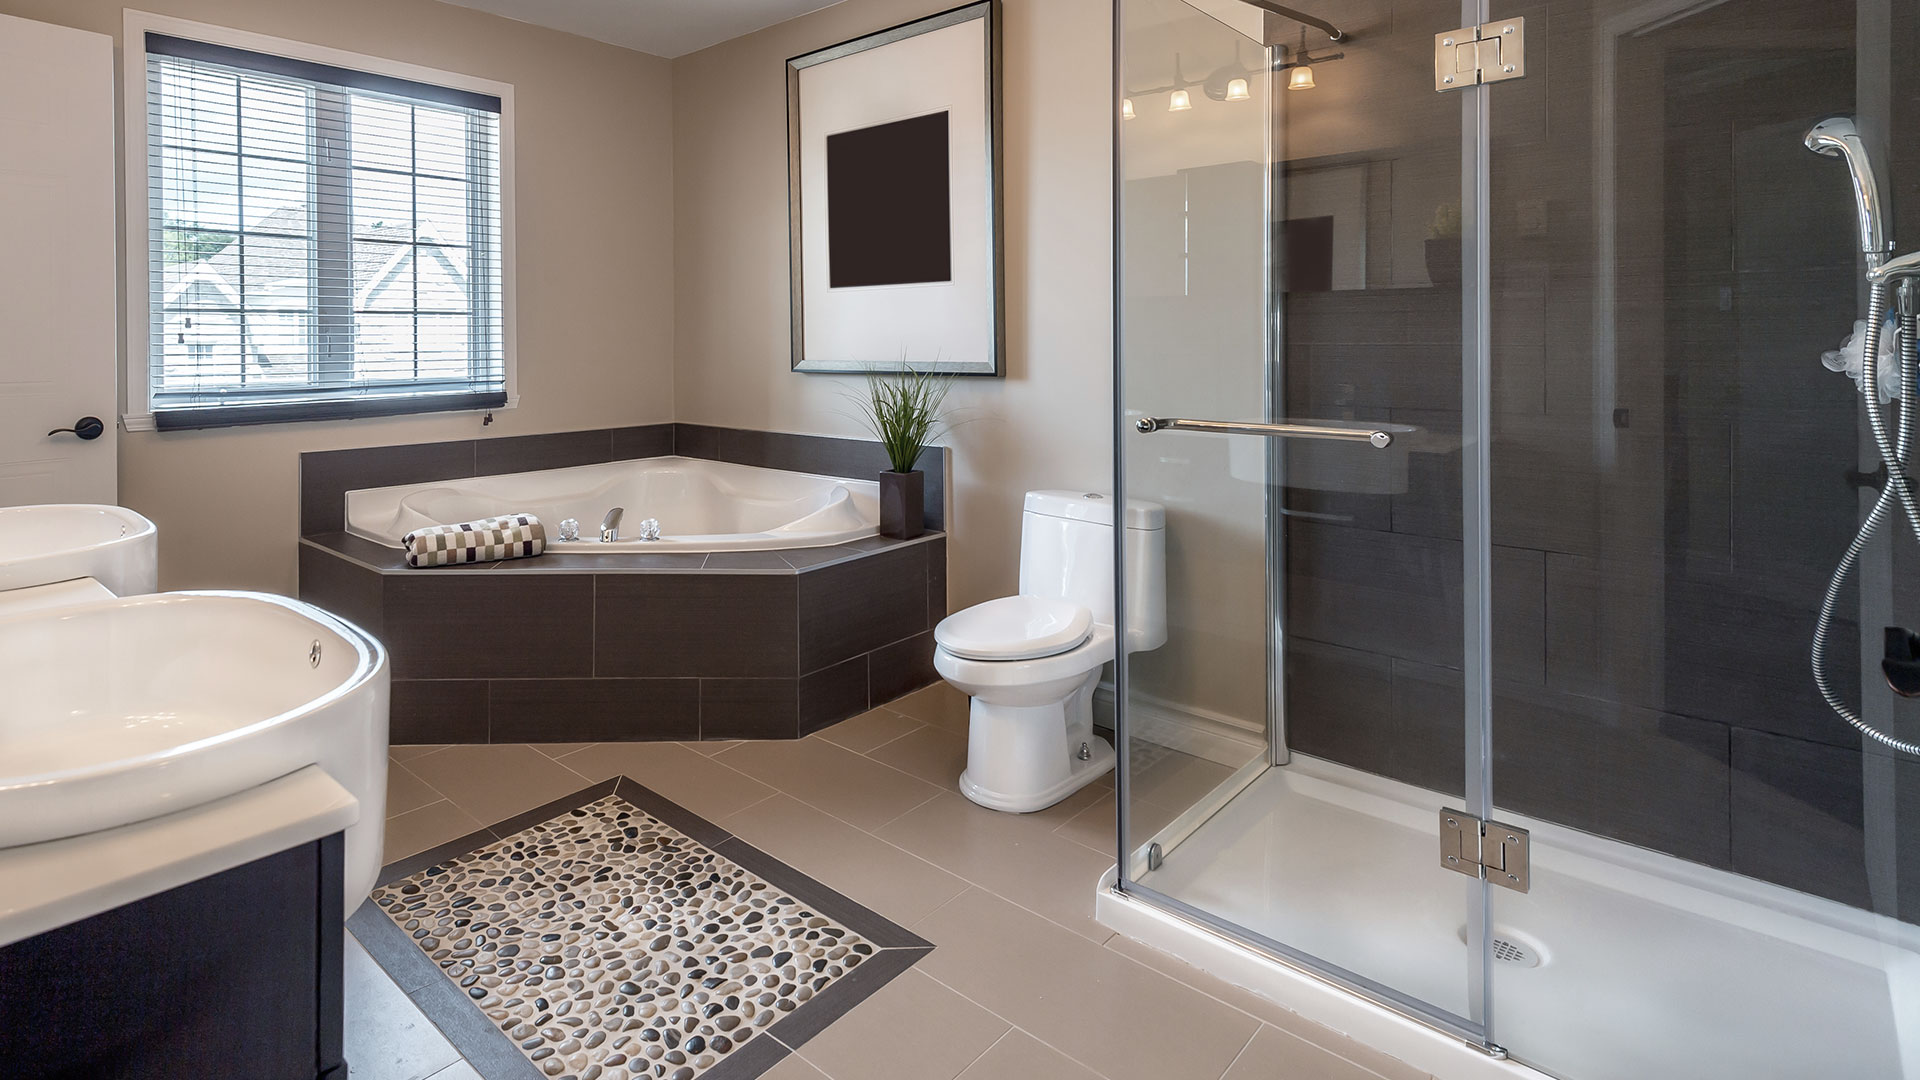 Bathroom Remodeling Sparks Handyman Home Repairs And Fence Repair - Bathroom repair and remodel